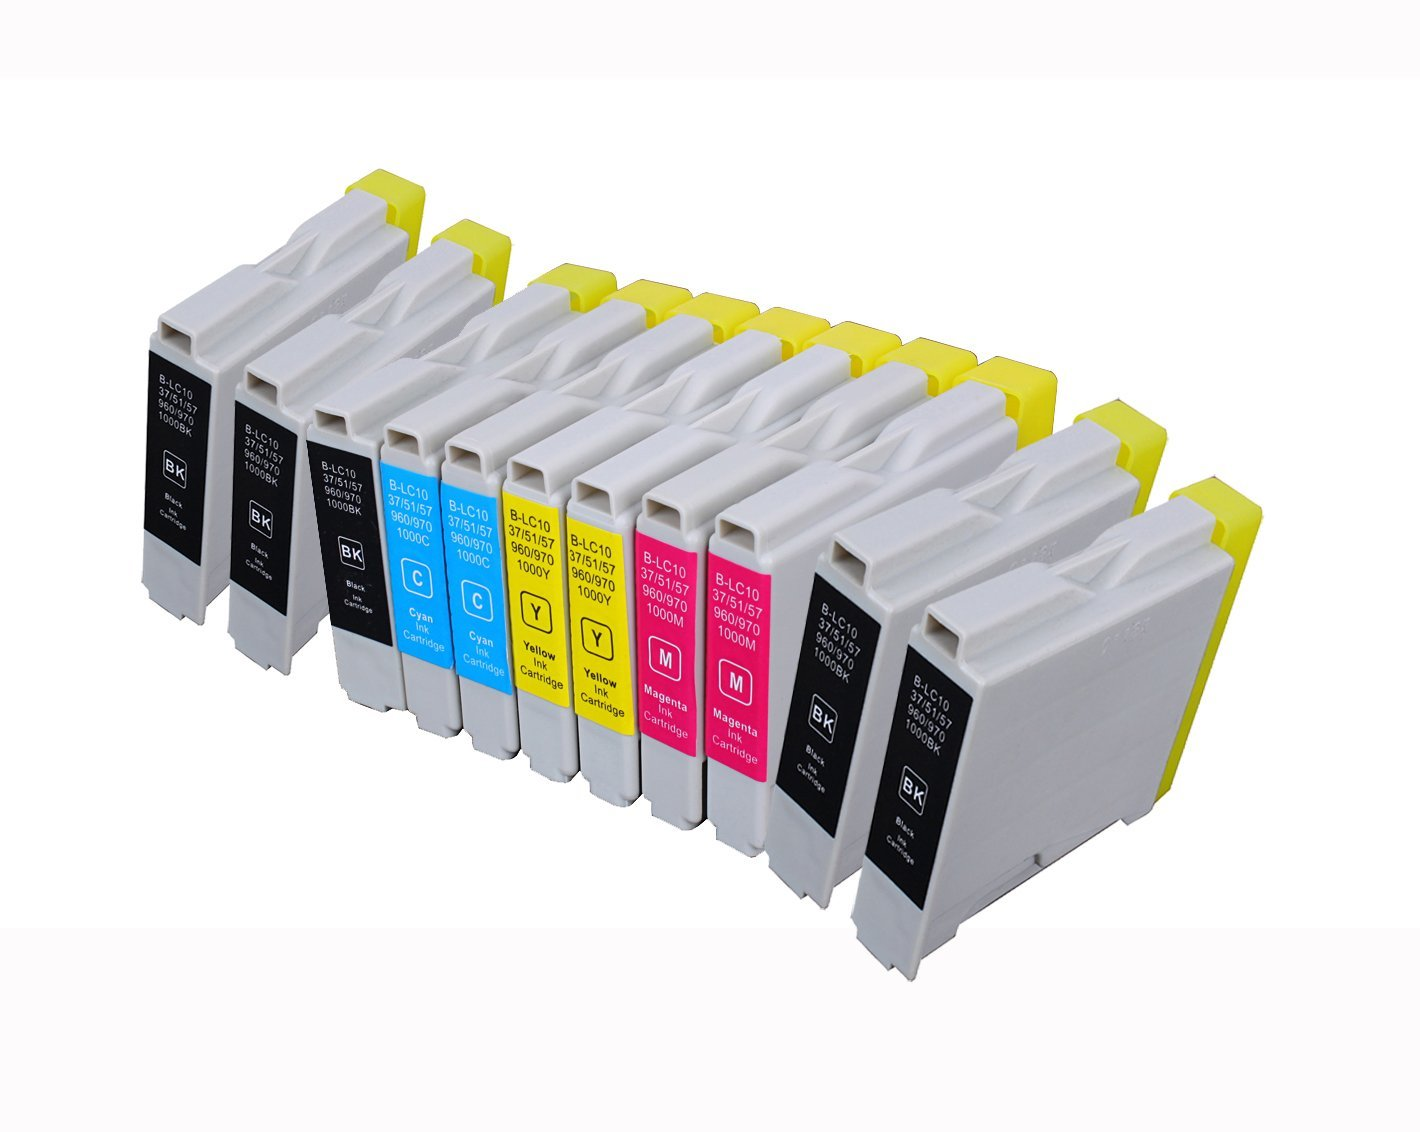 Inkcool 10-pack LC51 LC10 LC37 LC57 LC970 LC1000 LC960B 2480,IntelliFax-2580C,Fax-1460,Fax-1560 Compatible ink cartridges for Brother IntelliFax-1360,IntelliFax-1860C,IntelliFax-1960C,IntelliFax 4B,2C,2M,2Y